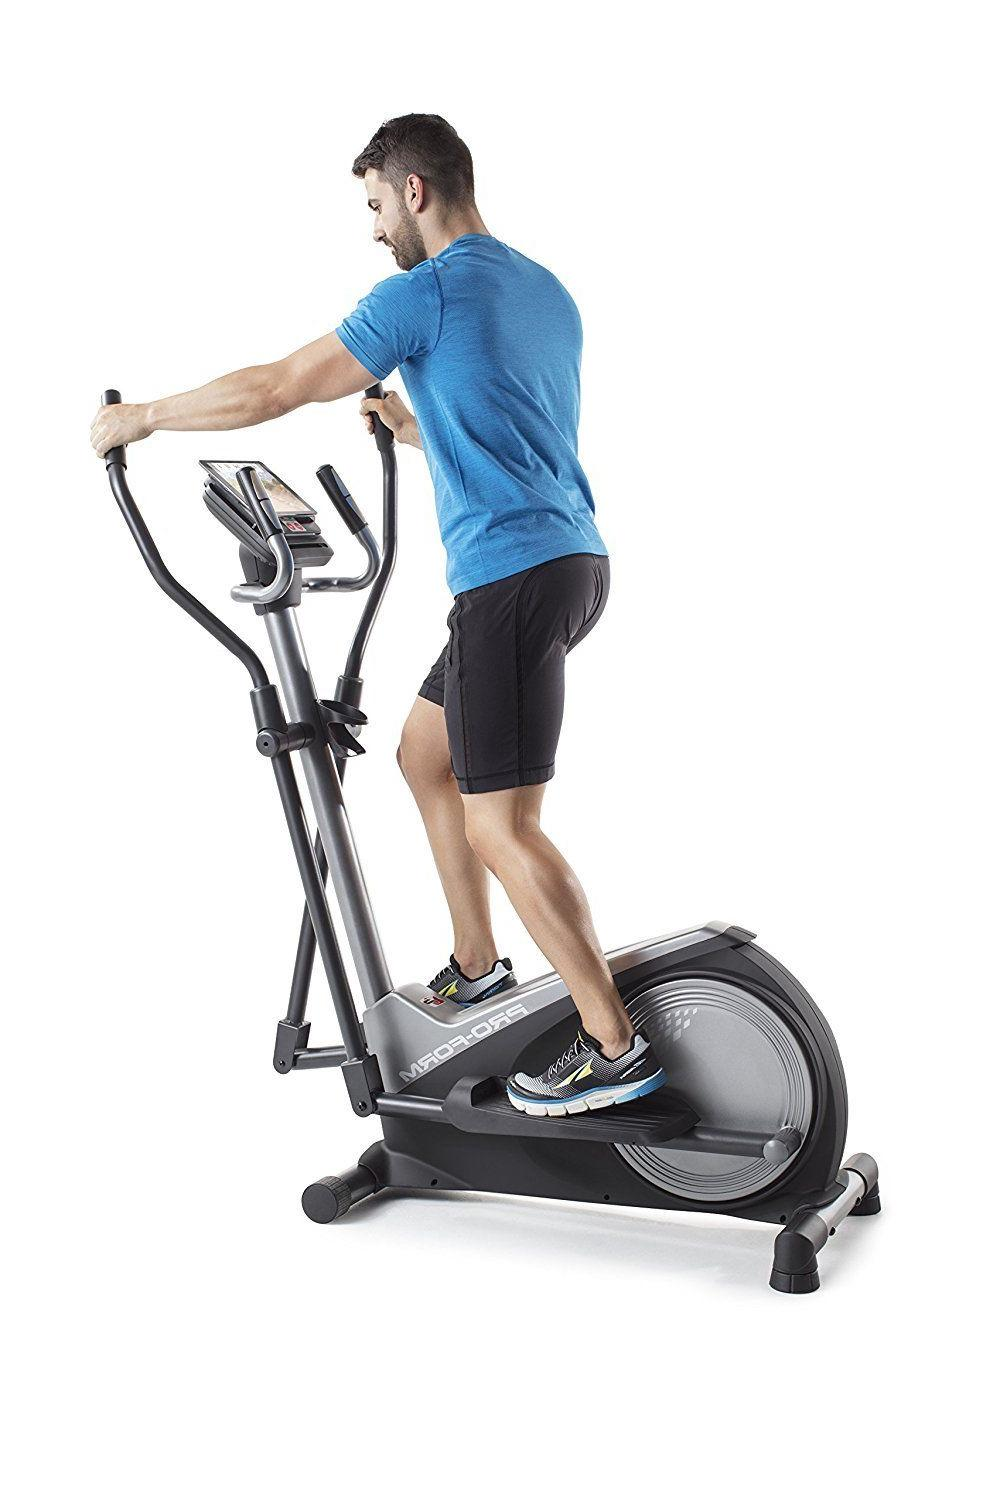 ProForm 295 ,Fitness Equipment,Threshold Delivery